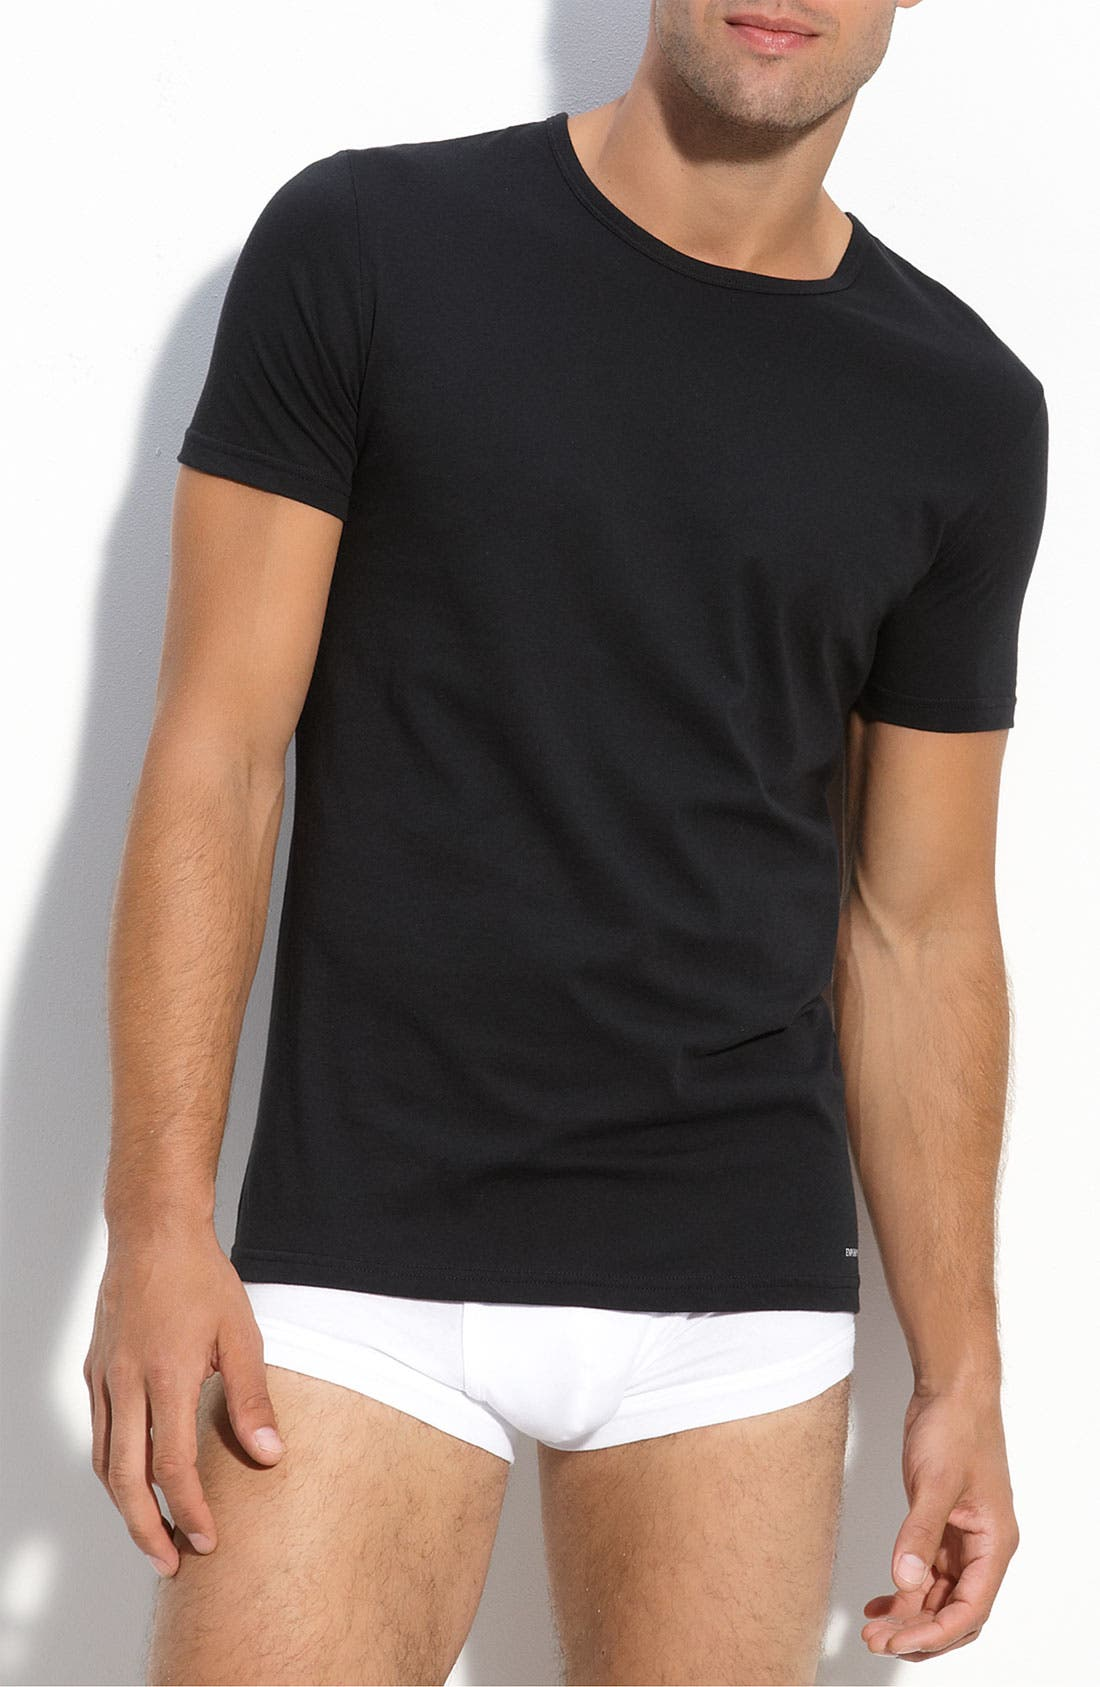 Alternate Image 1 Selected - Emporio Armani Crewneck T-Shirt (3-Pack)